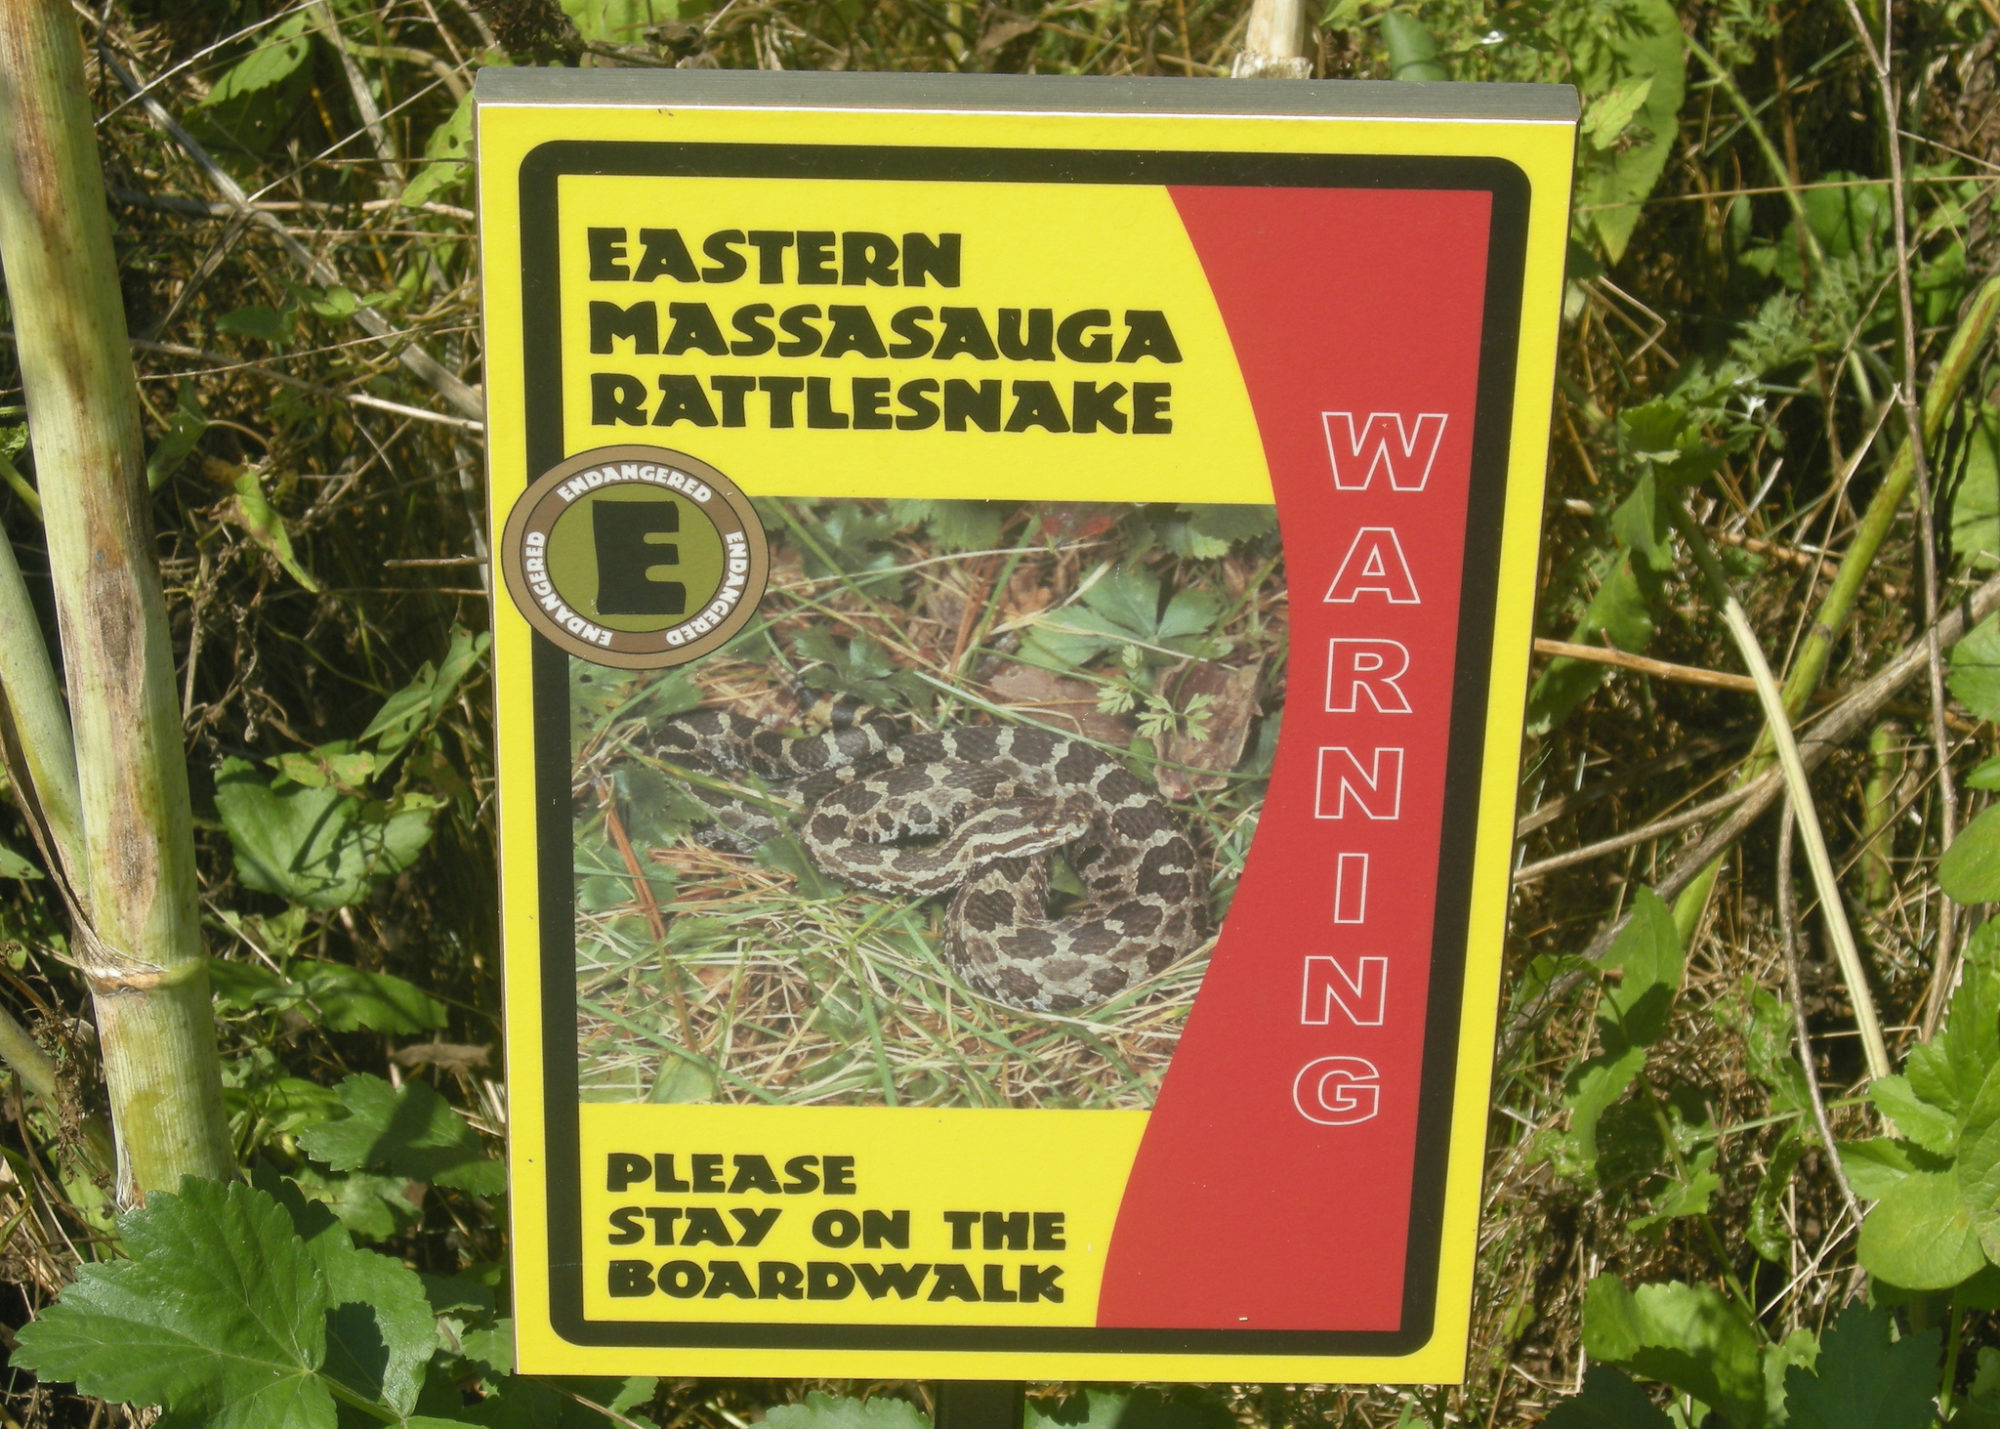 warning sign with an image of the massasauga and a warning to stay on the boardwalk